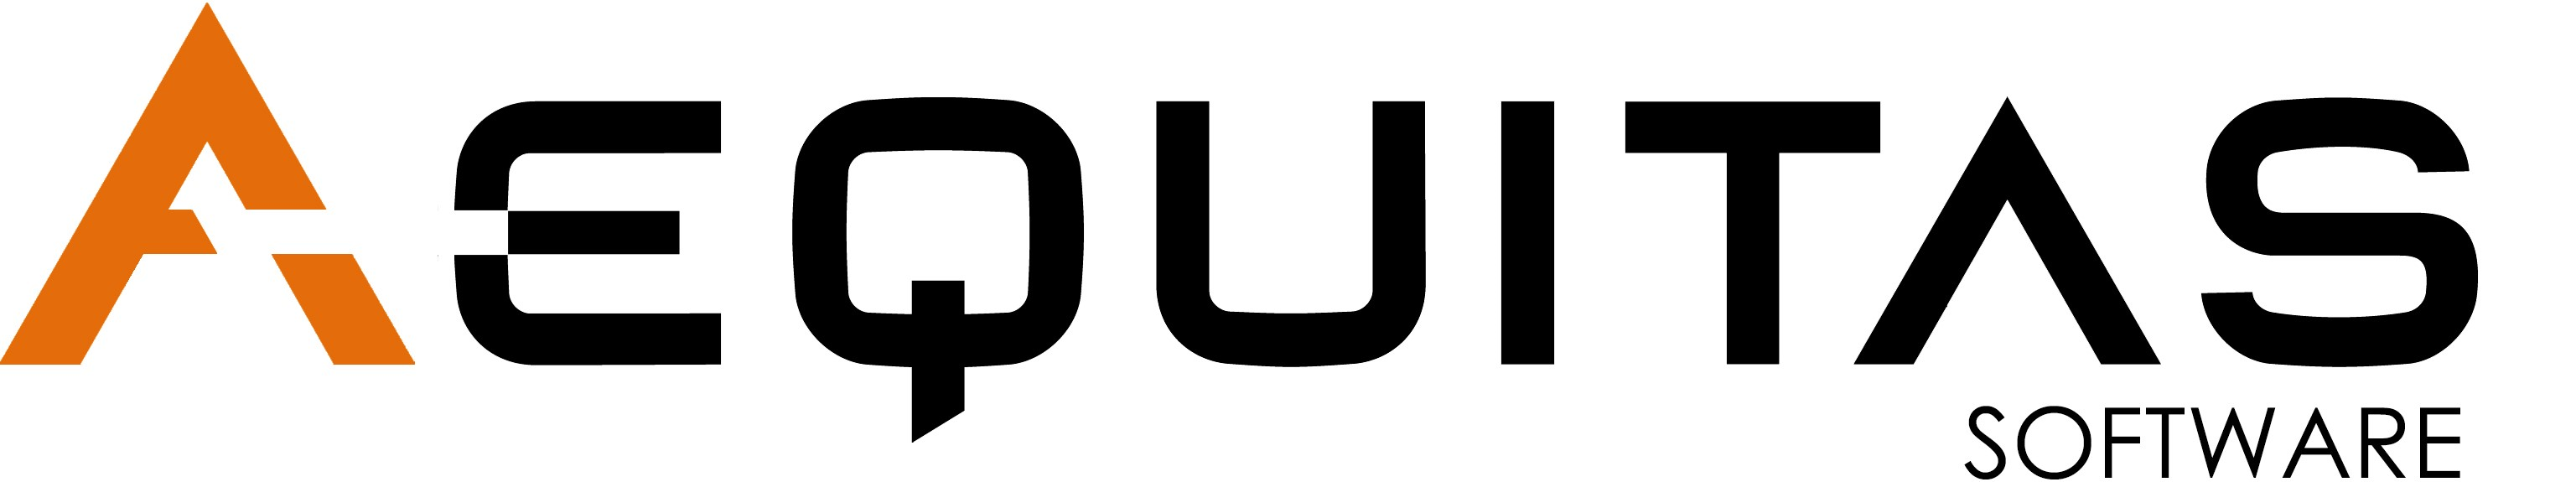 Logo Aequitas Software GmbH & Co. KG